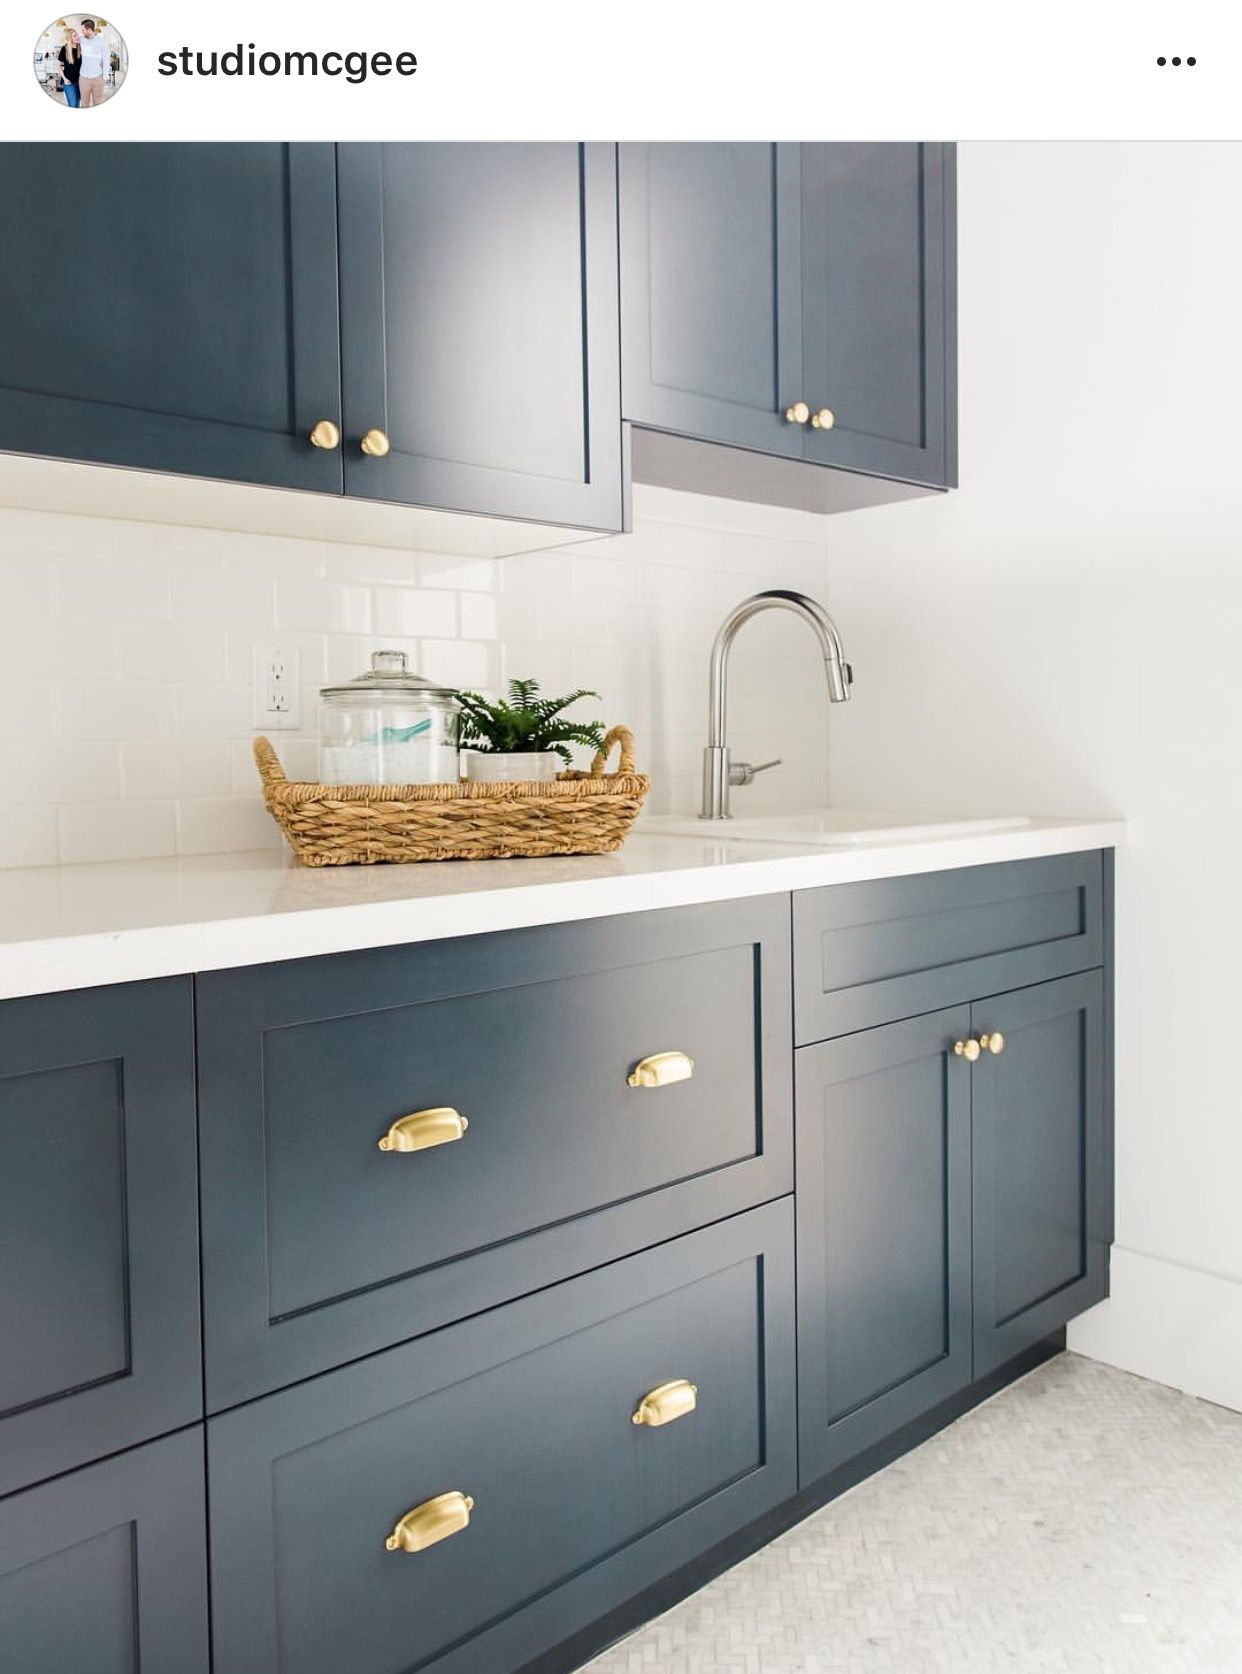 Hale Navy Benjamin Moore Painted Cabinets In Navy Blue Navyblue Paintedcabinets Blue Laundry Rooms Kitchen Kitchen Inspirations